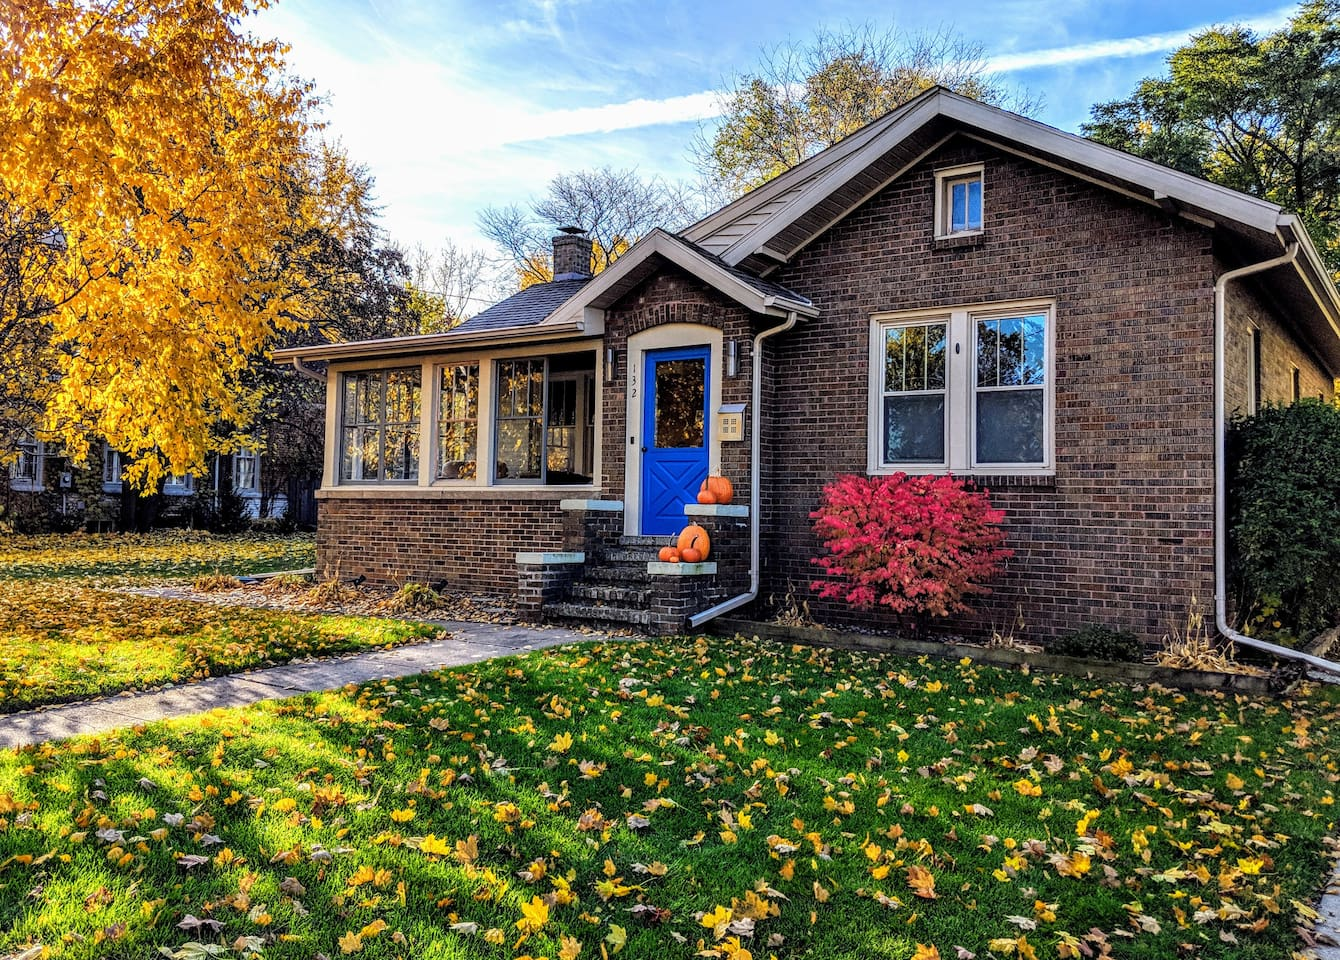 Modern 1920s Bungalow decorated with autumn foliage and pumpkins